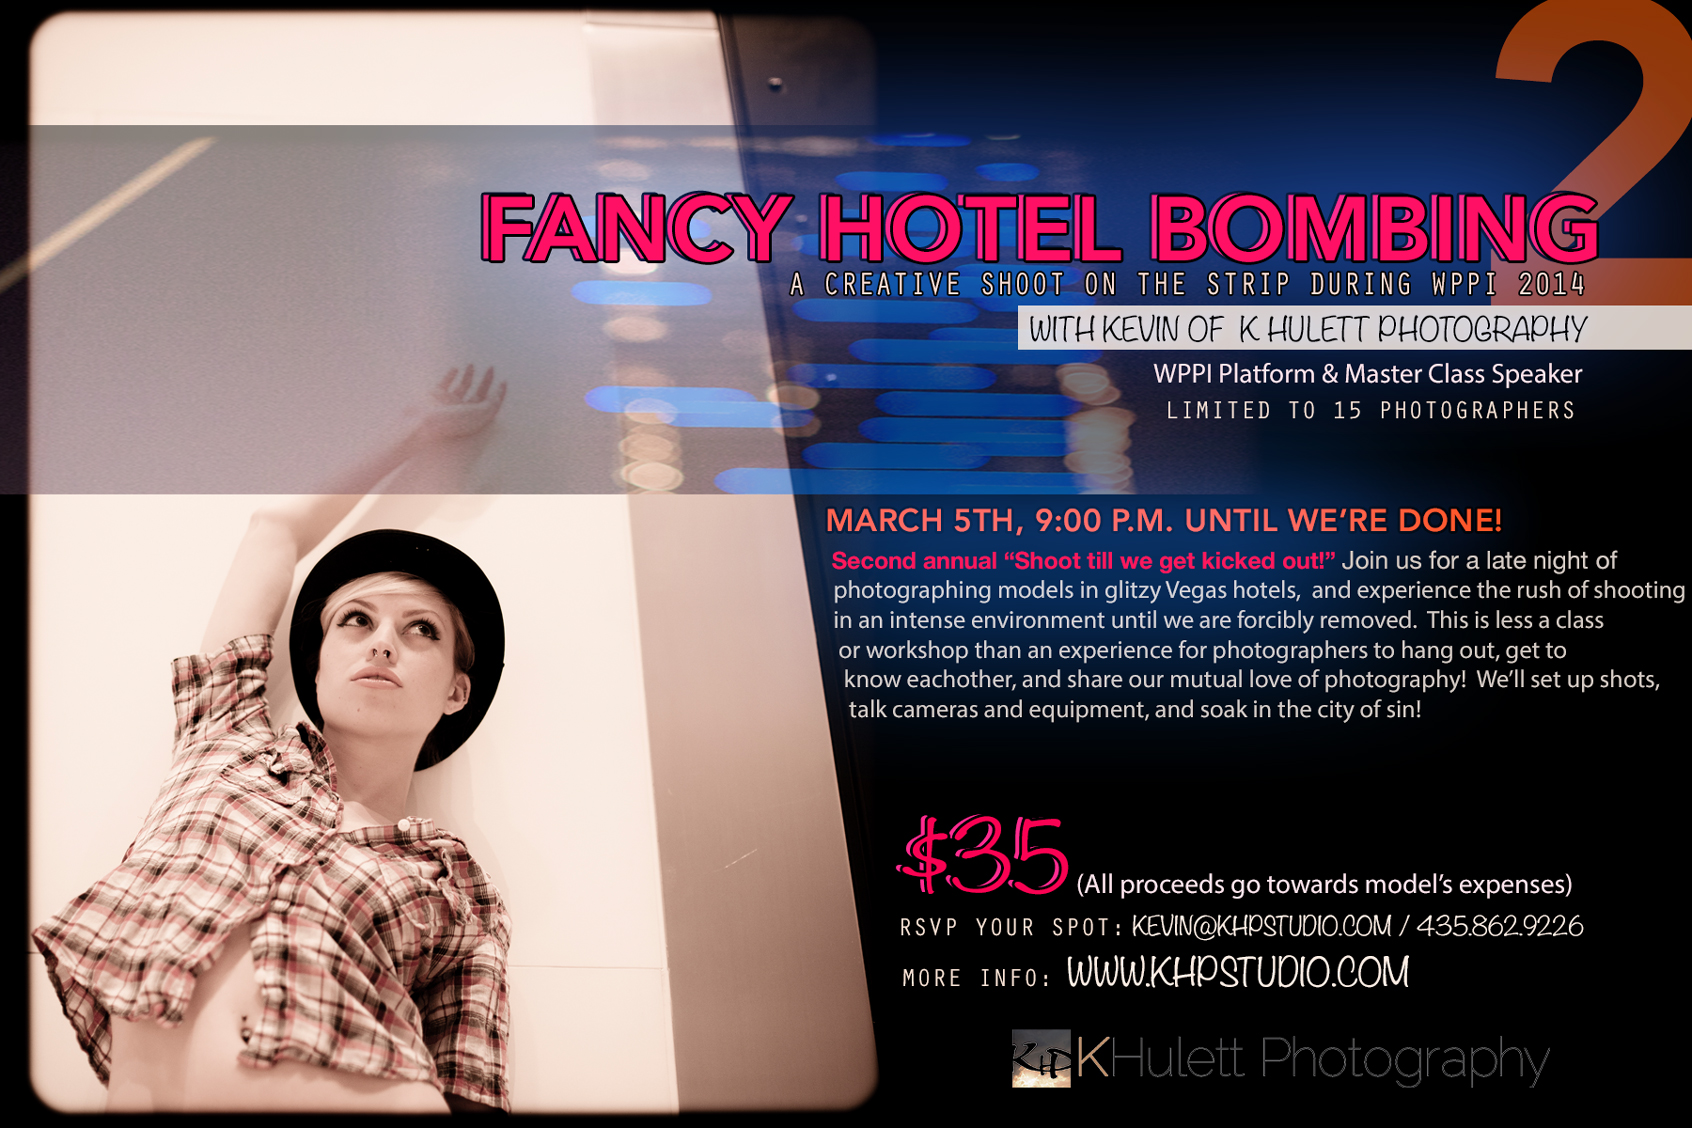 Fancy Hotel Bombing 2 is SOLD OUT!